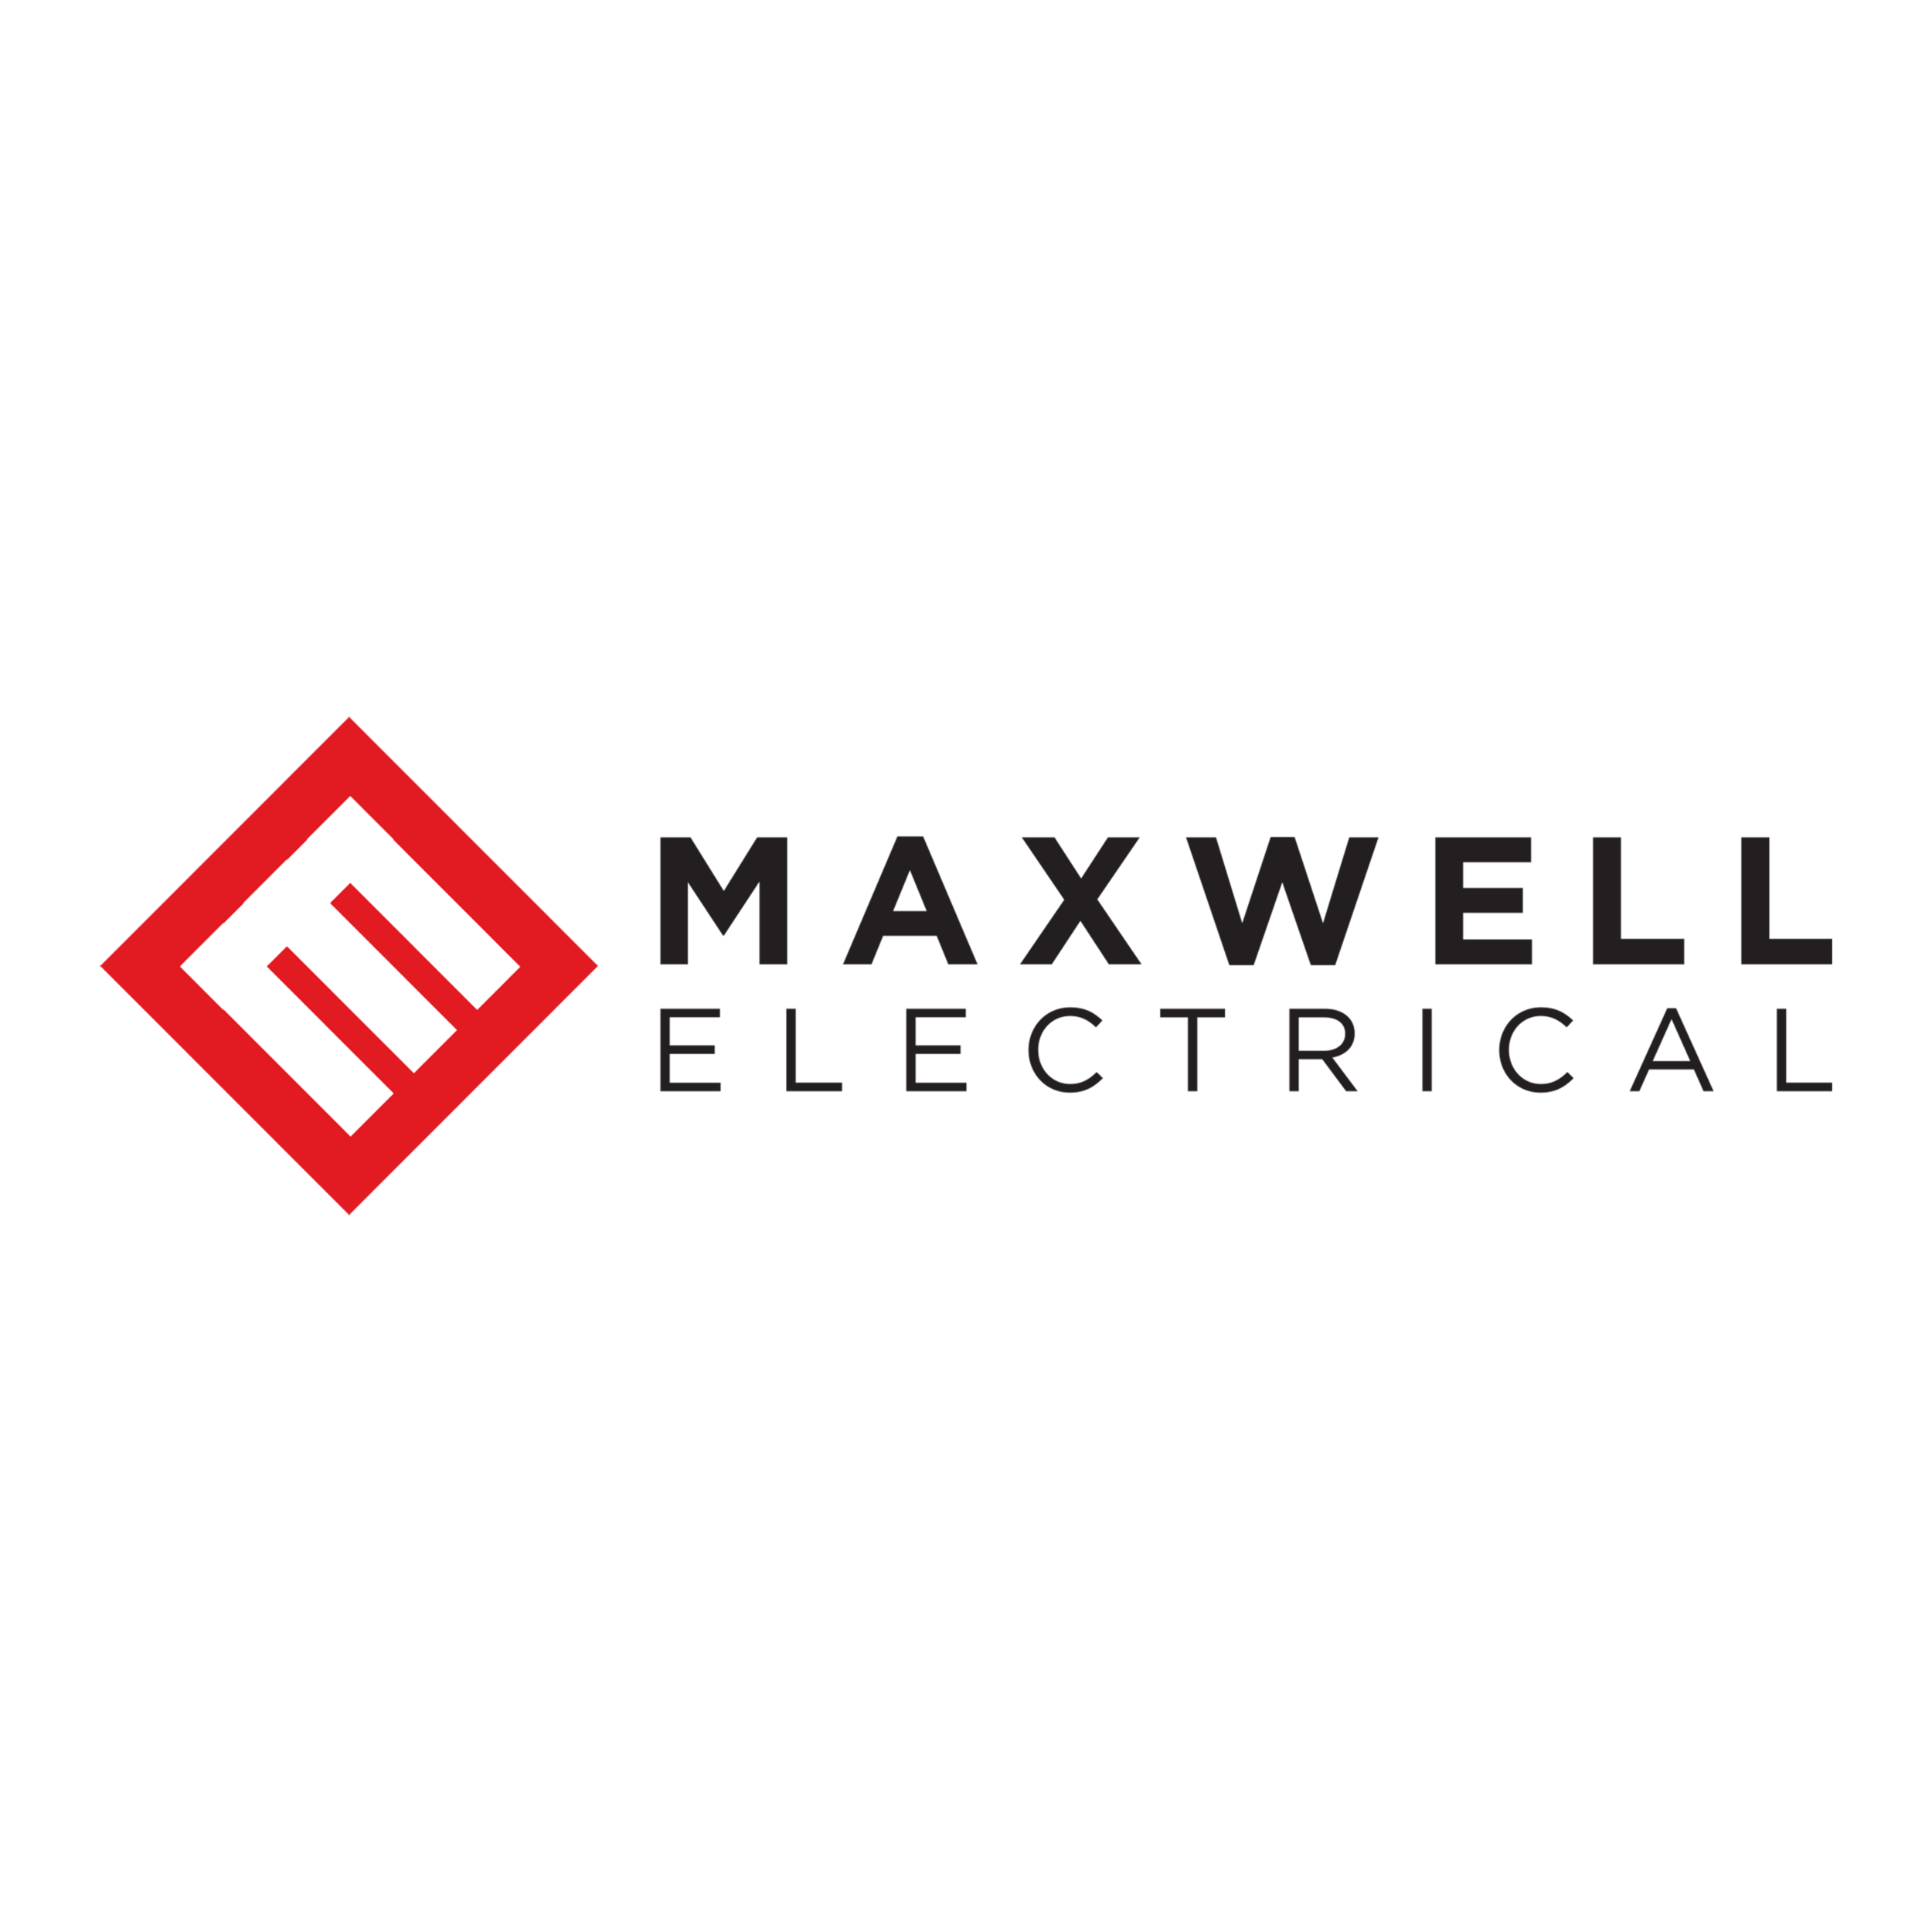 Maxwell Electrical.png